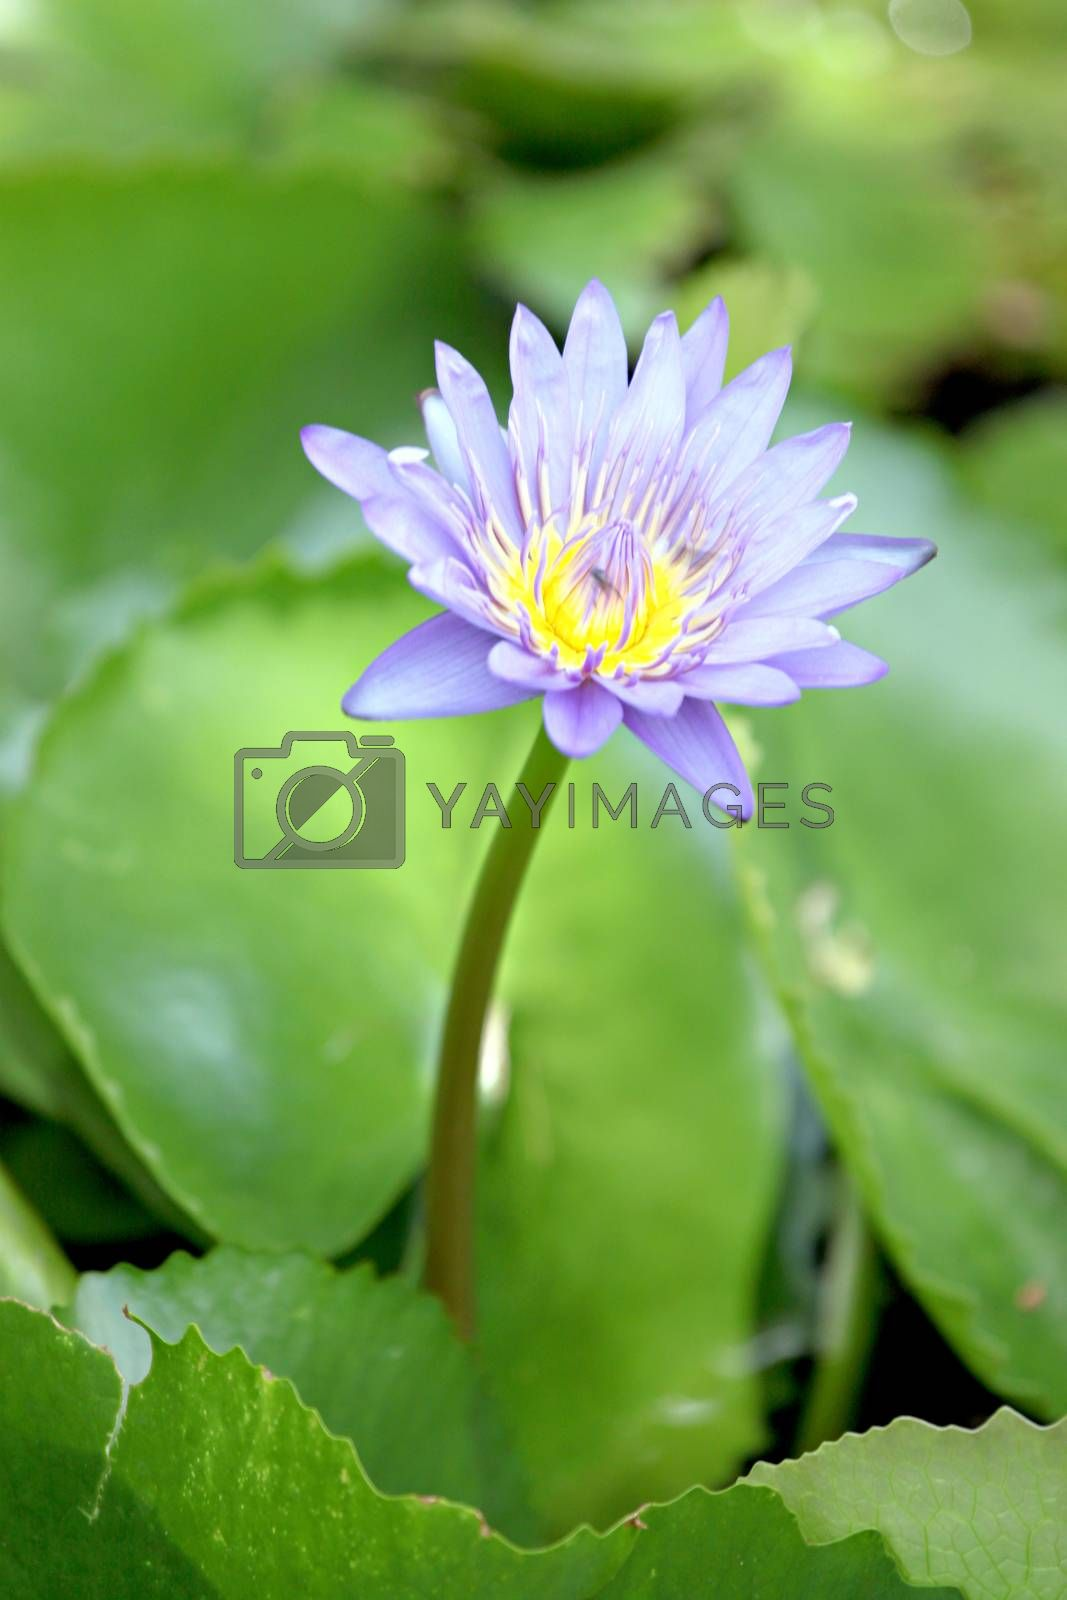 The violet  lotus in the pond and green leaf lotus of  background.